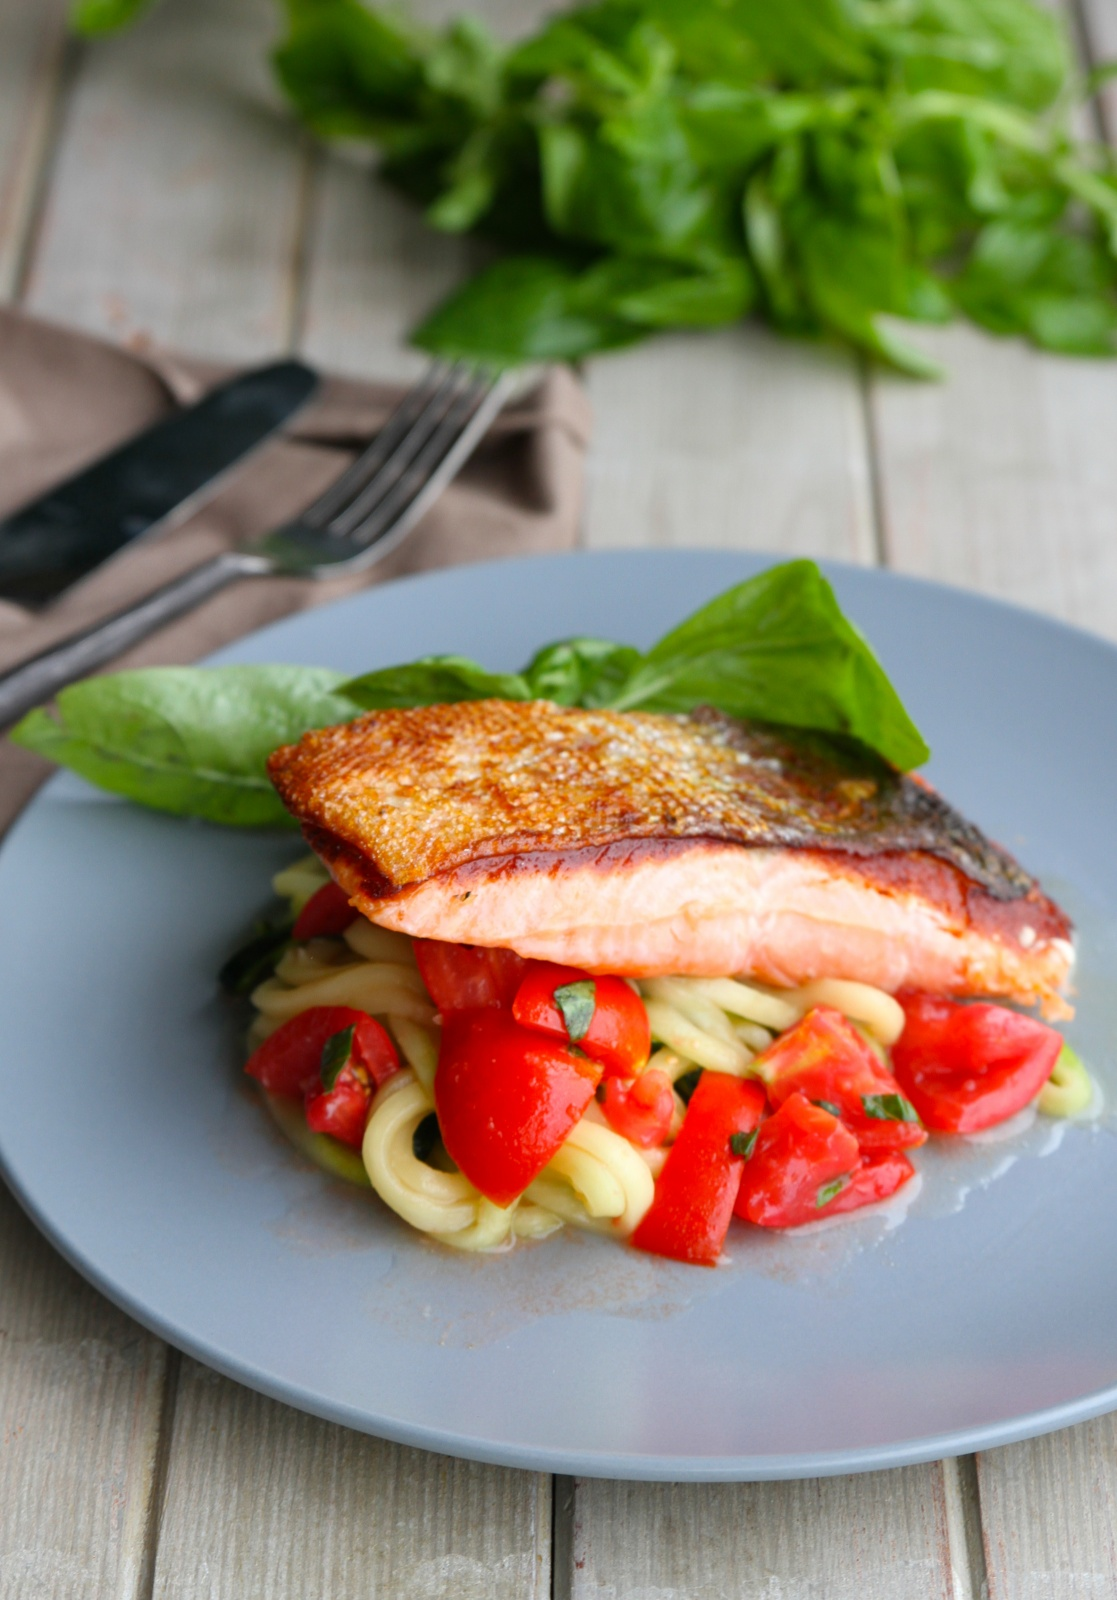 meet salmon singles Flavourful fish is easy with bbq salmon recipes that lead you to great grilled catches any day easy does it with foil-pack salmon recipes that clean up in a jiffy.